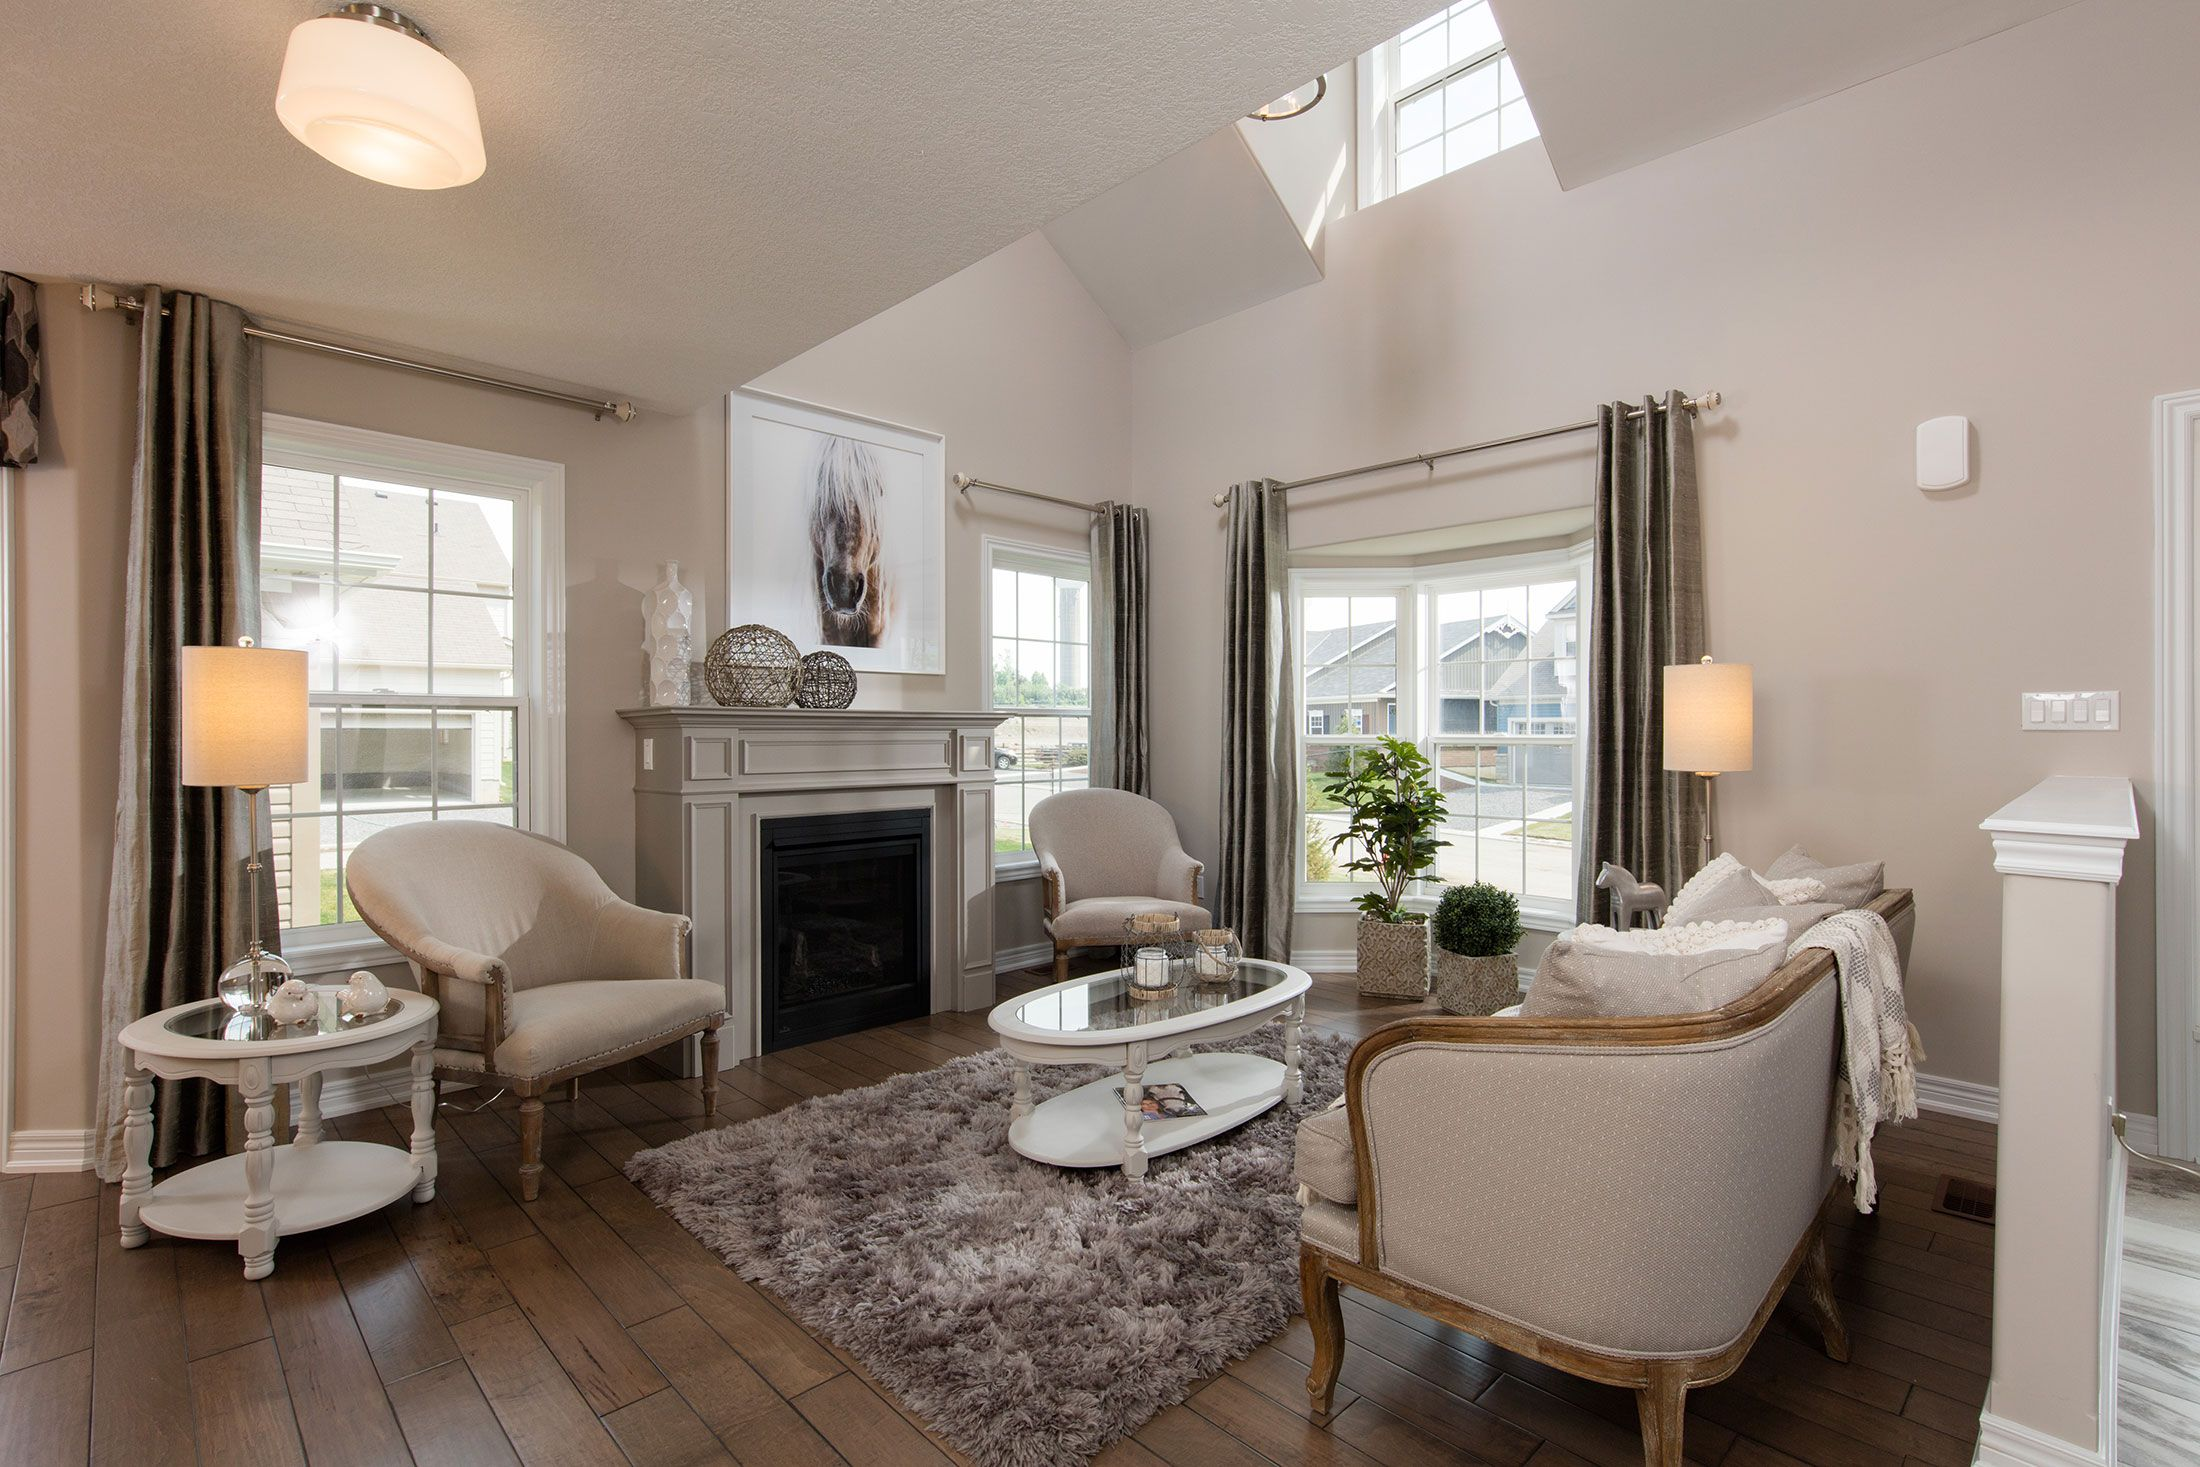 Mason Homes Builds Quality Homes For Generations With Over 7 000 New Homes Built In The Best Locations From Toro Mason Homes New Home Builders New Home Designs